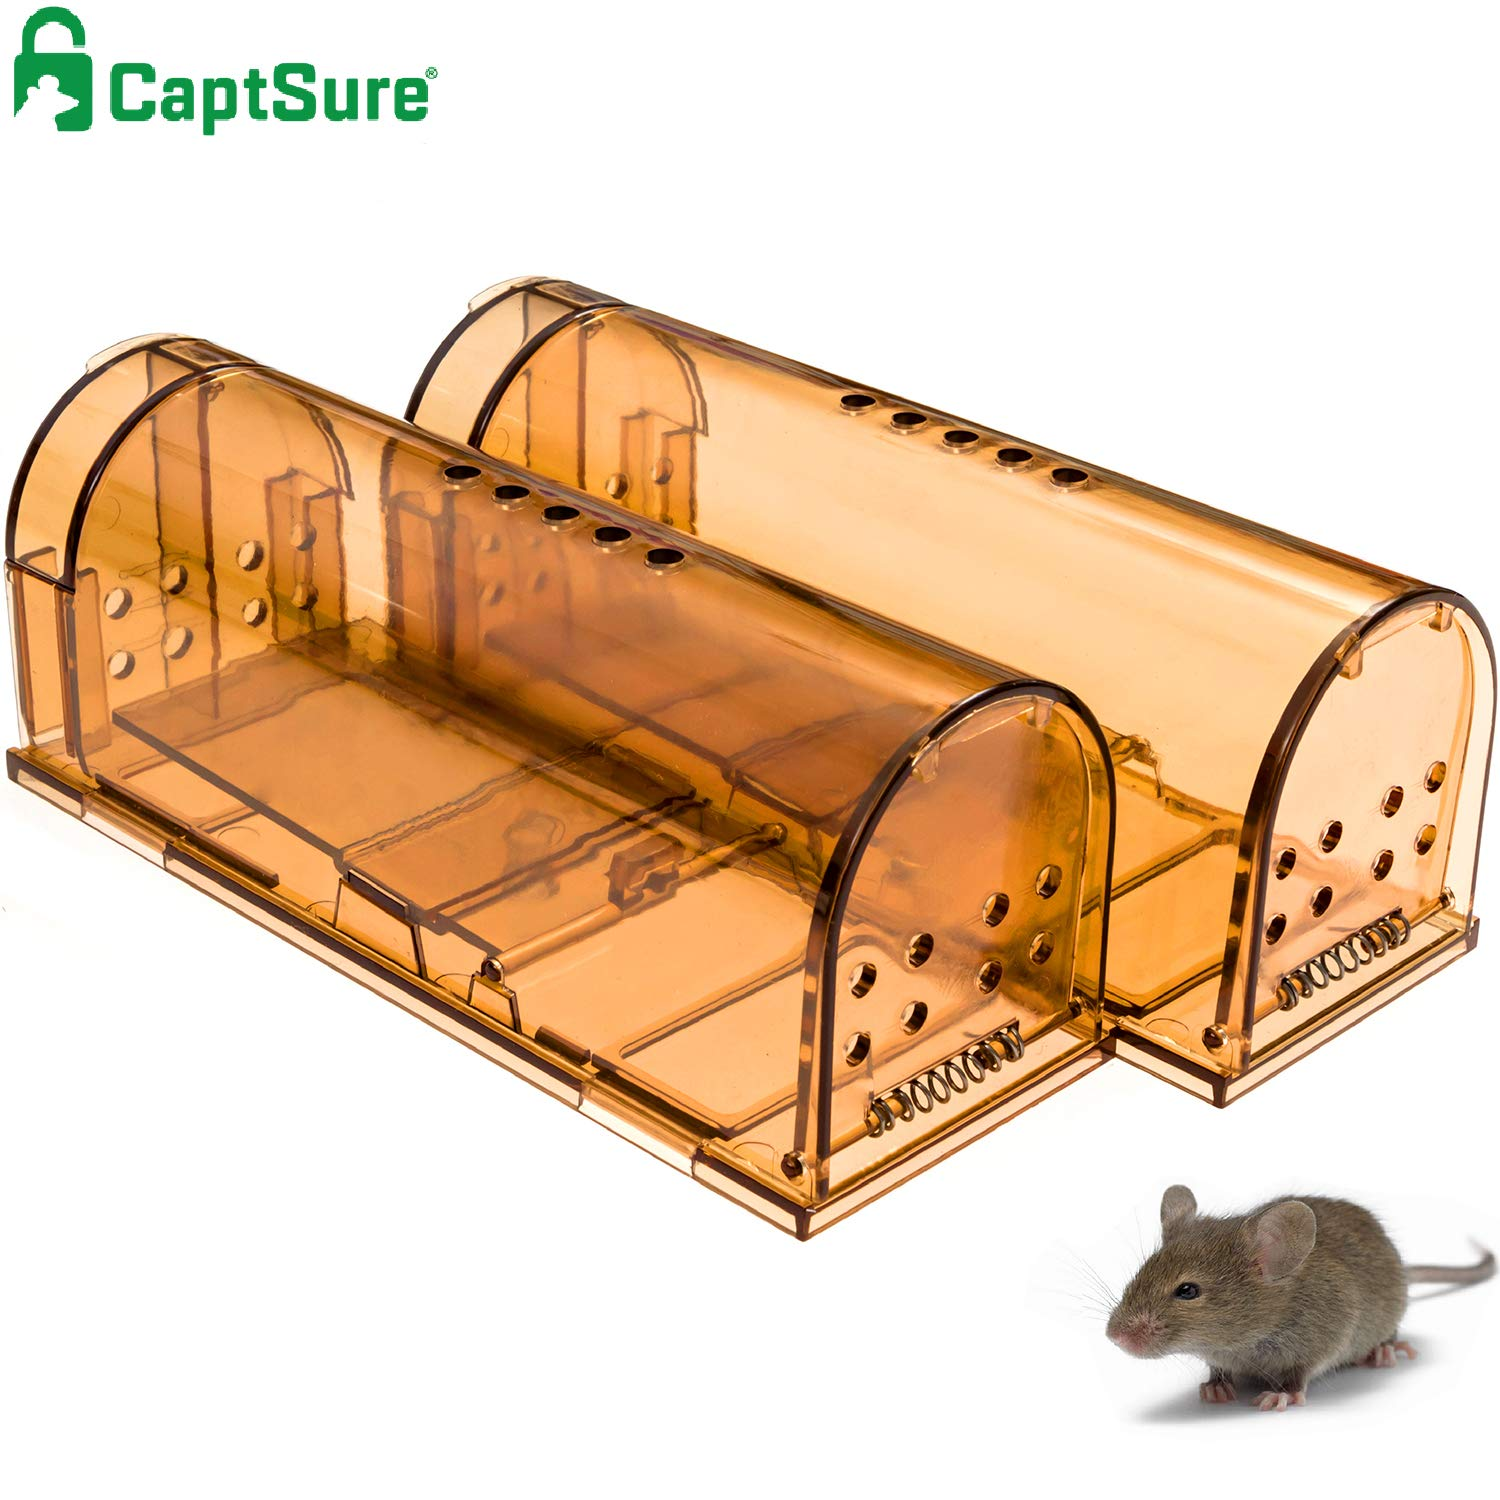 CaptSure Original Humane Mouse Traps, Easy to Set, Kids/Pets Safe, Reusable for Indoor/Outdoor use, for Small Rodent/Voles/Hamsters/Moles Catcher That Works. 2 Pack (Small) 71VxMhoaOGL